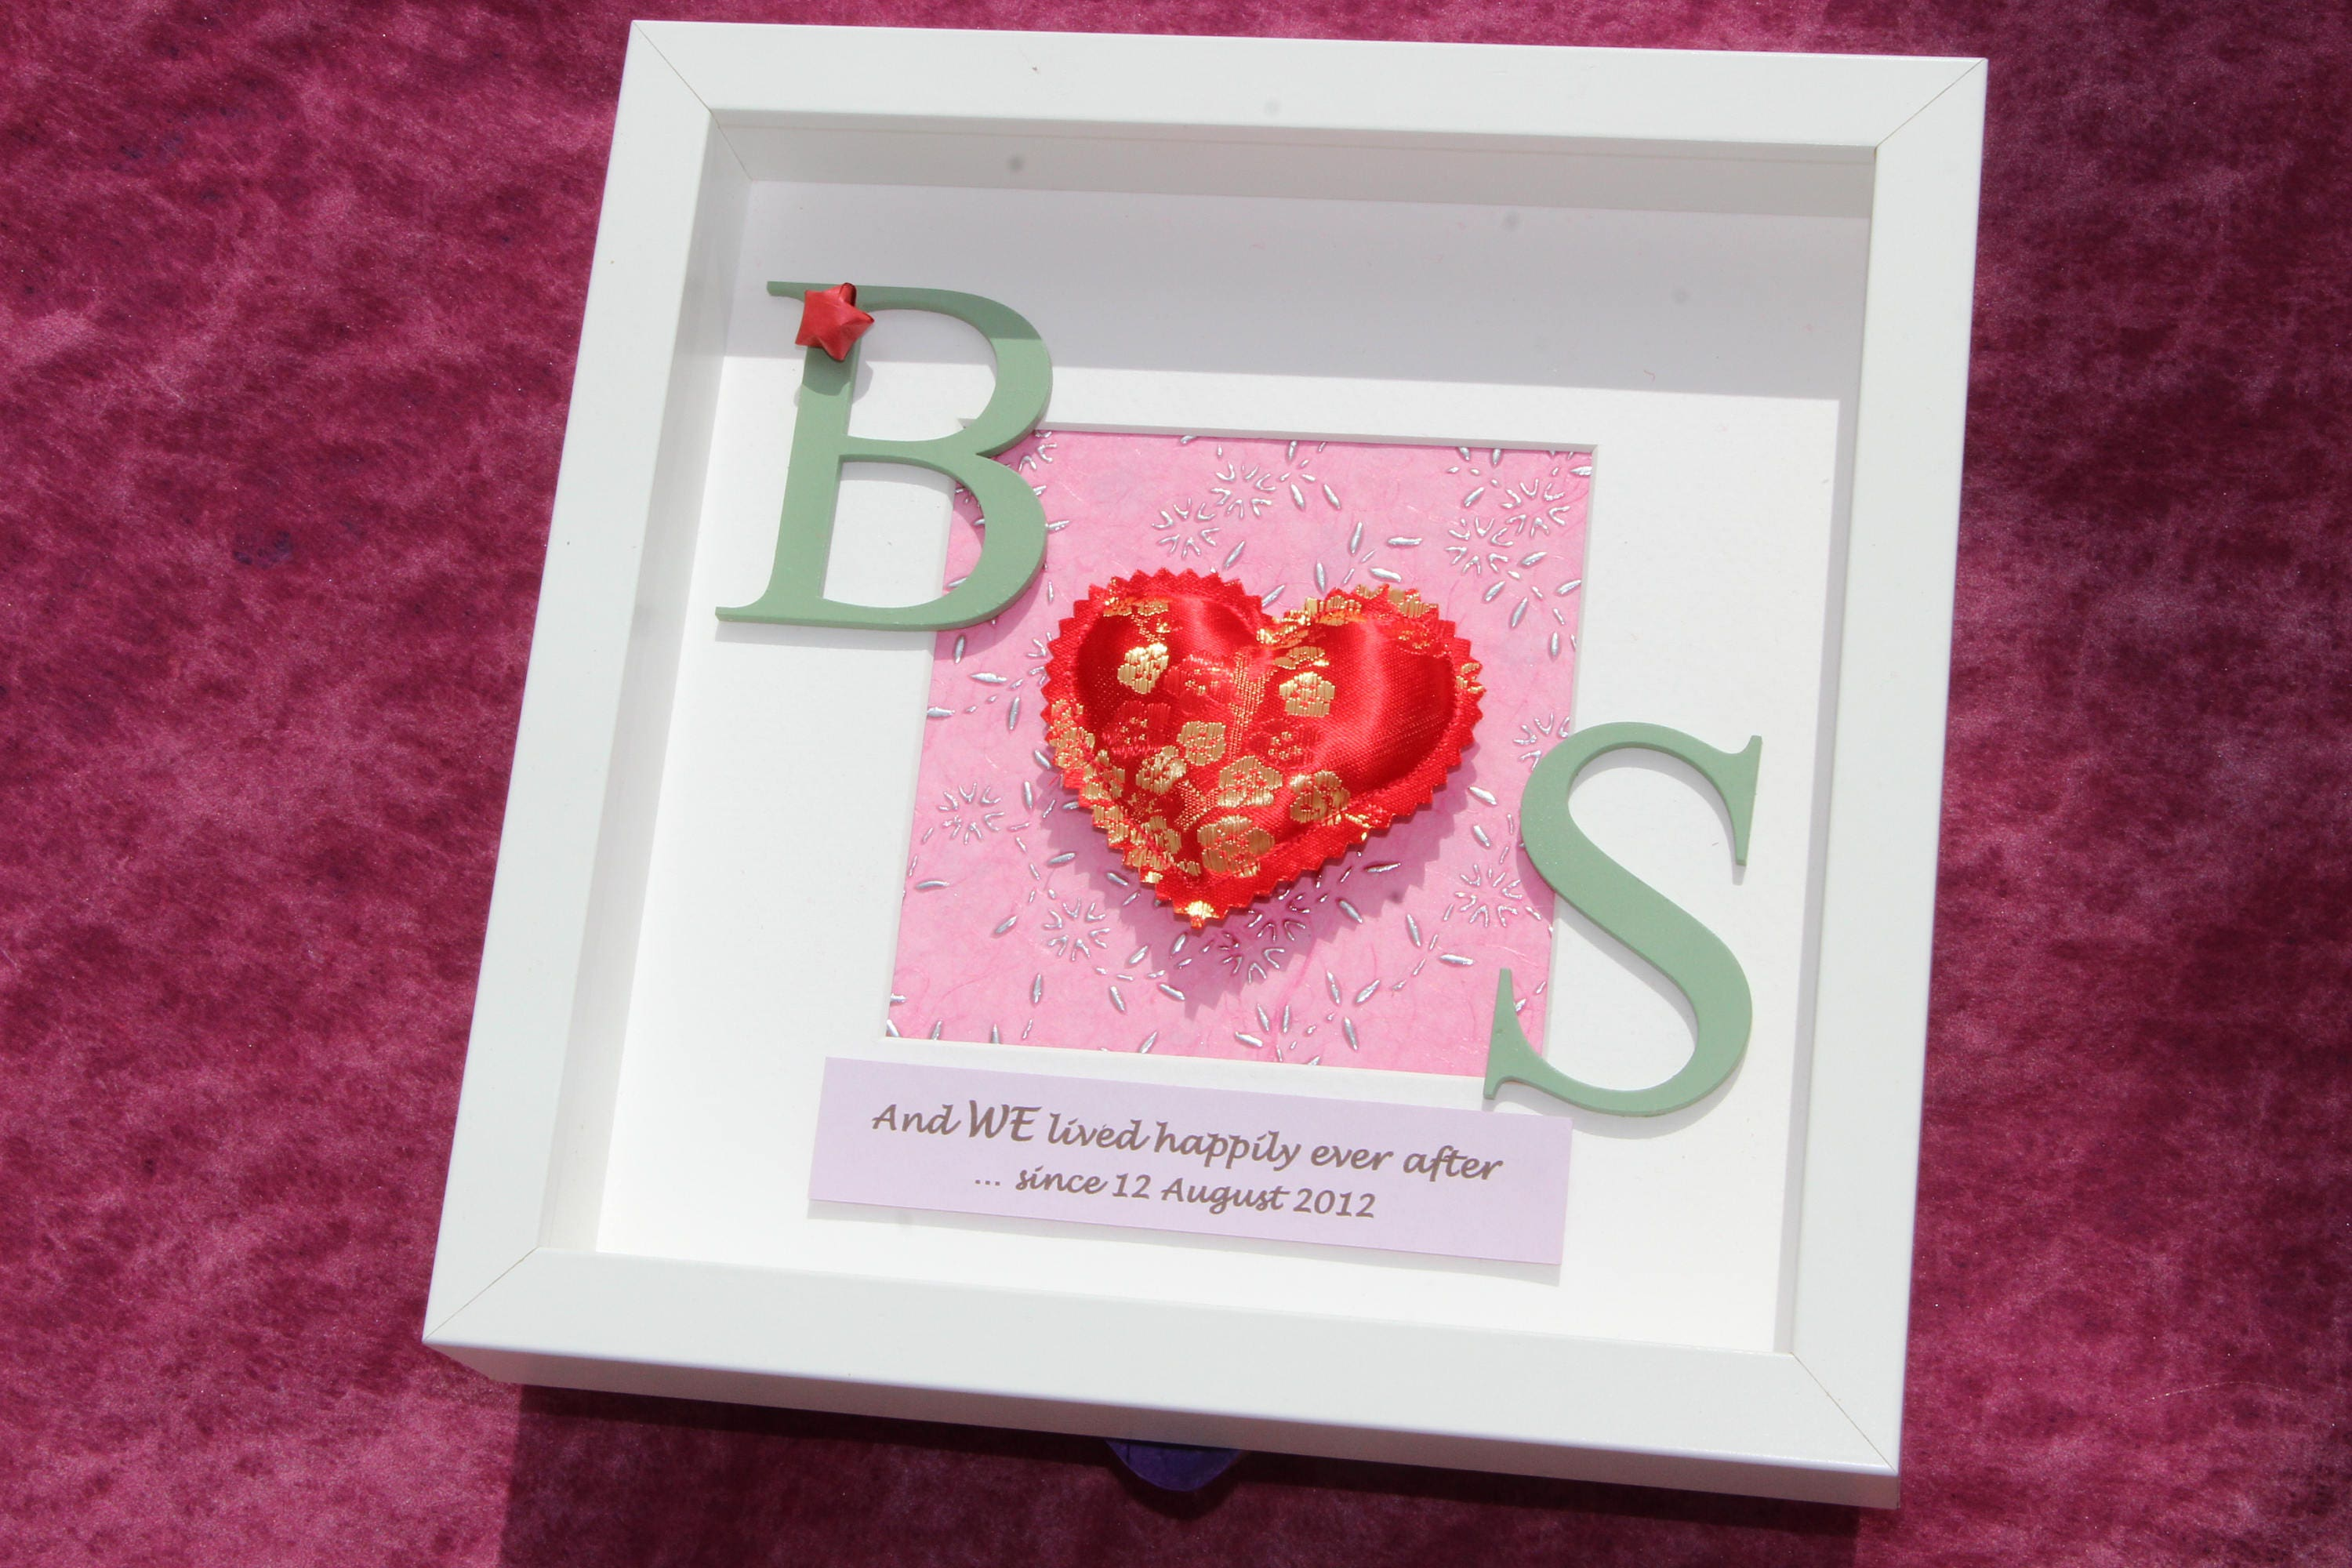 12th Wedding Anniversary Gift Ideas For Him: 4th / 12th Silk Wedding Anniversary Gift Shadow Box Frame